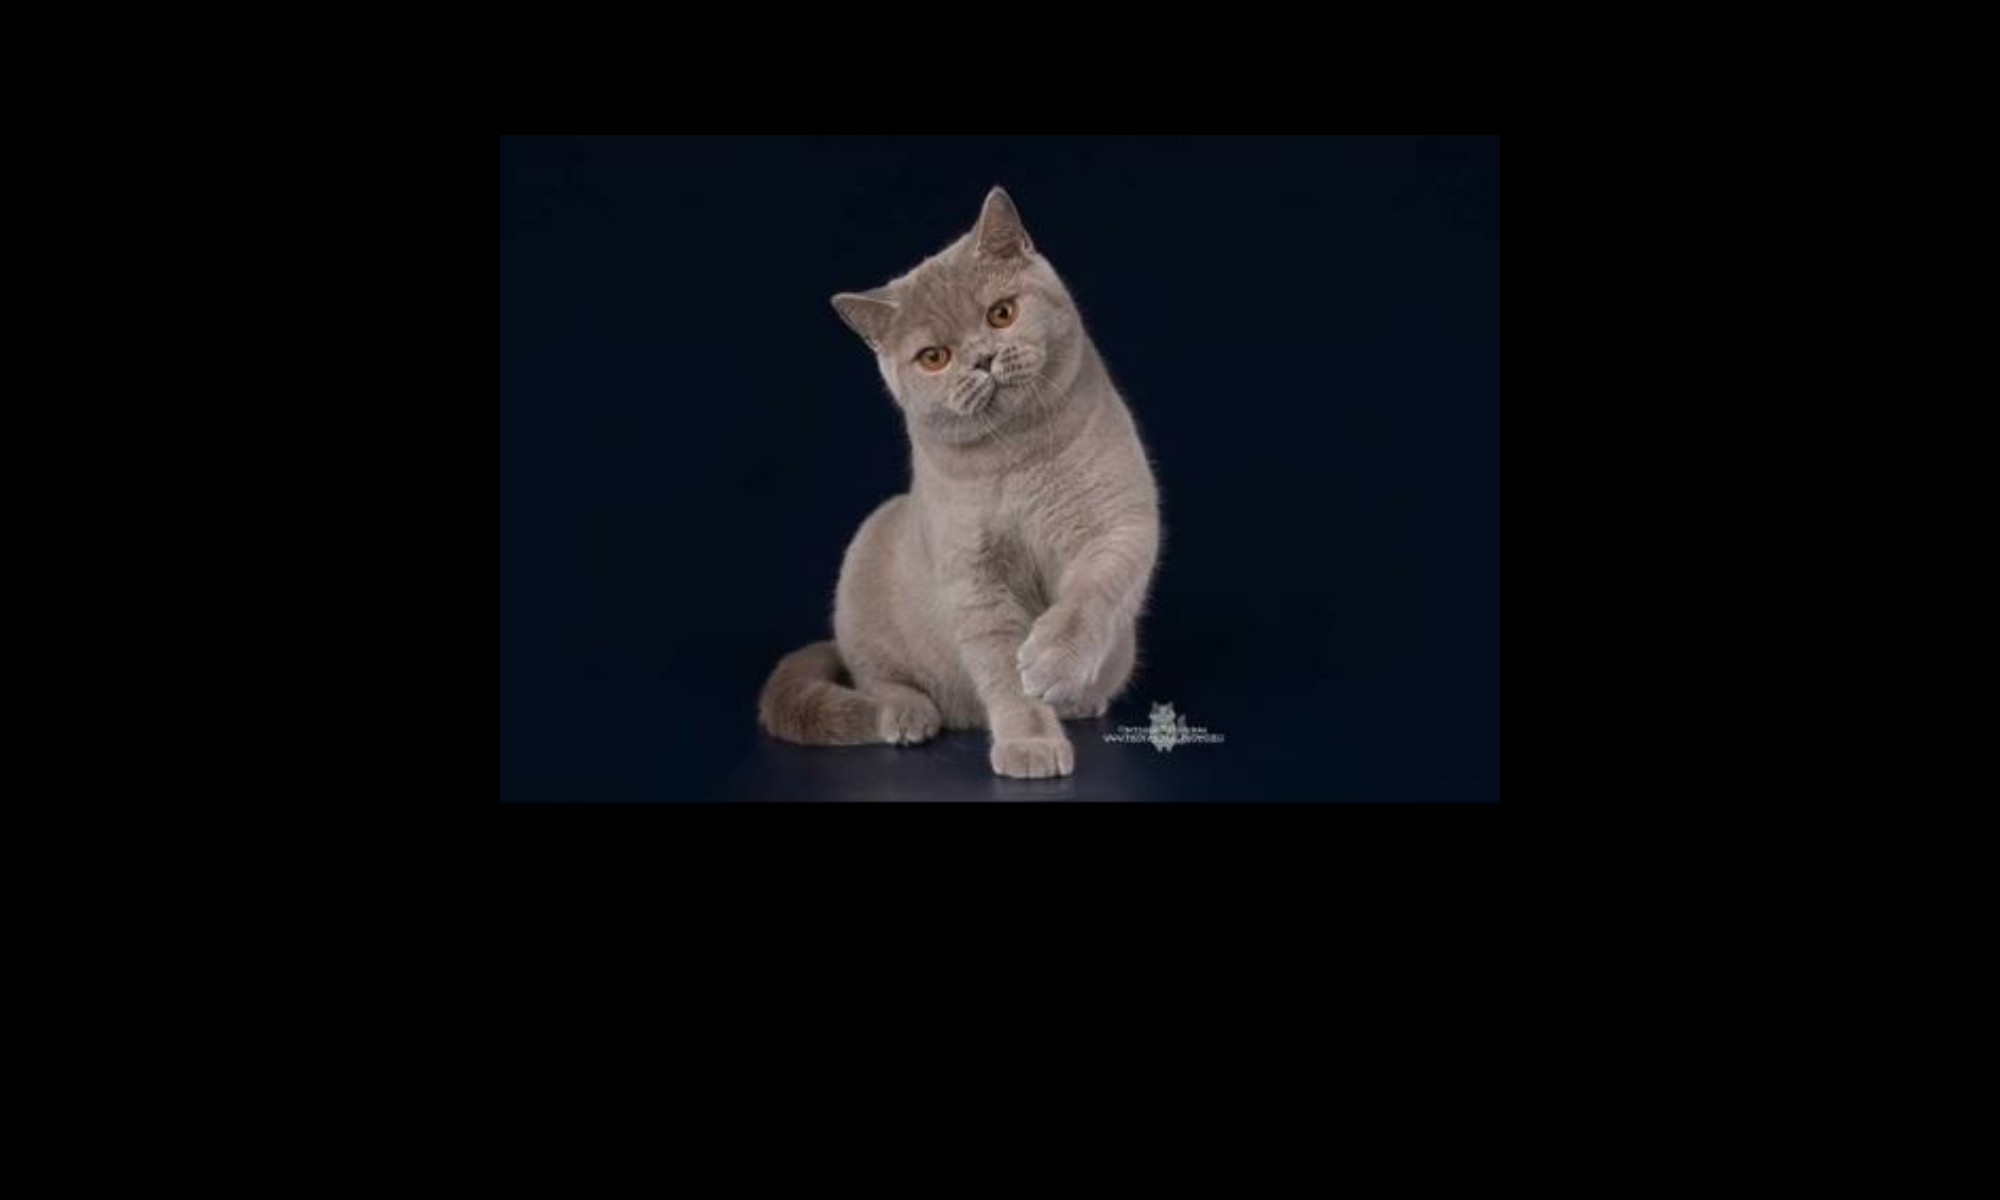 HollywoodBrits Cattery